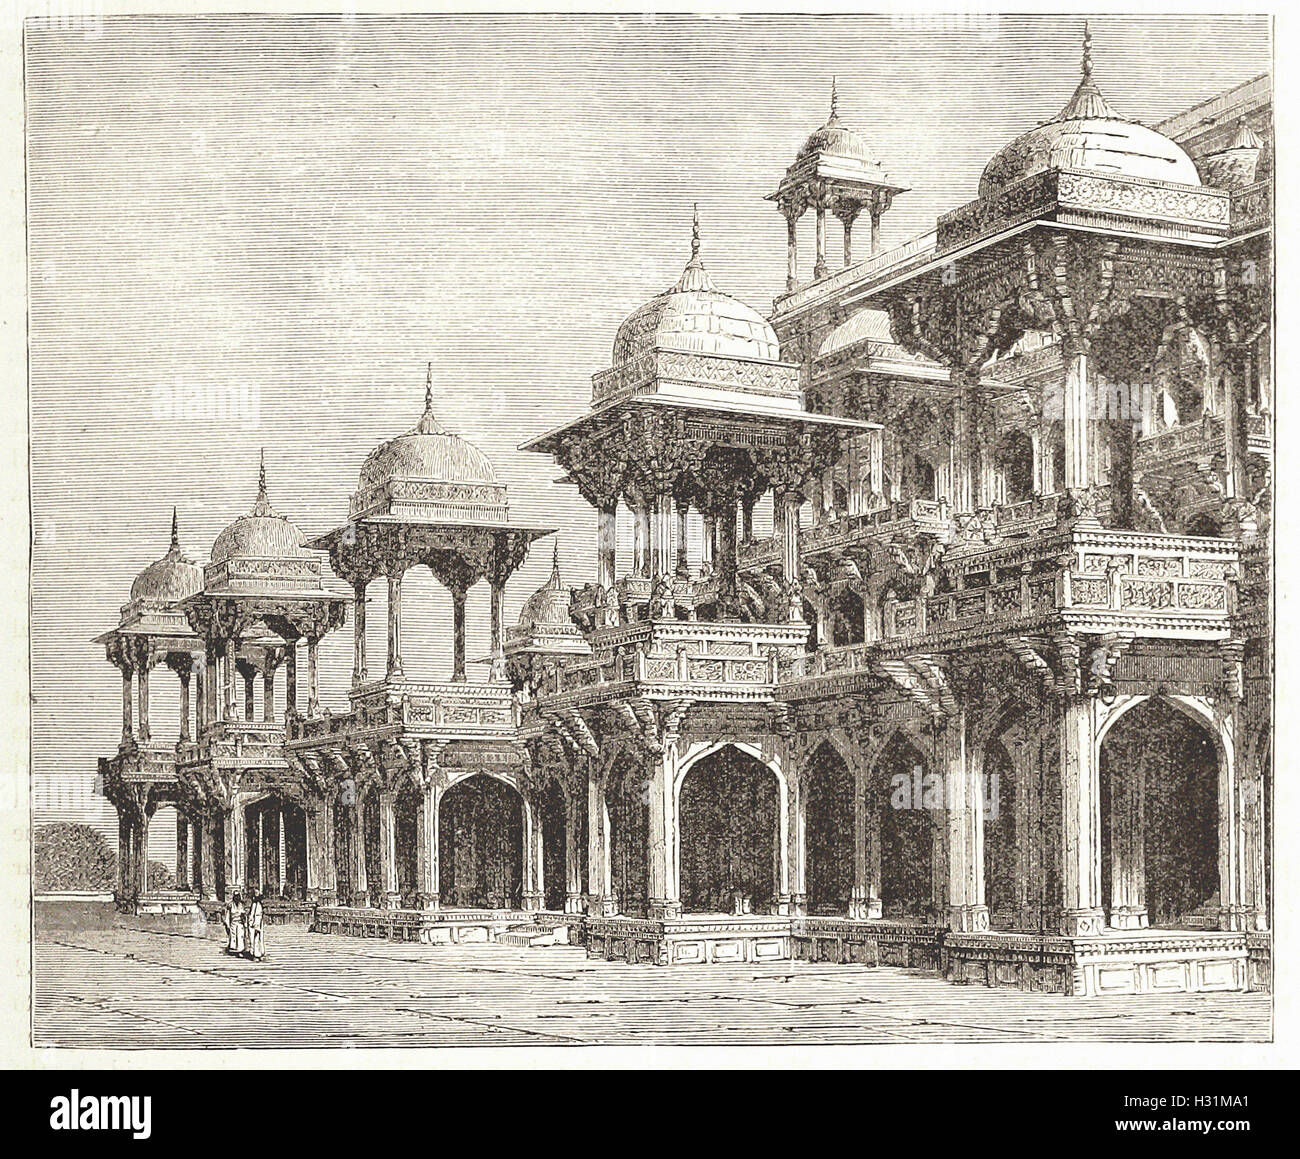 MAUSOLEUM OF AKBAR SECUNDRA - from 'Cassell's Illustrated Universal History' - 1882 - Stock Image